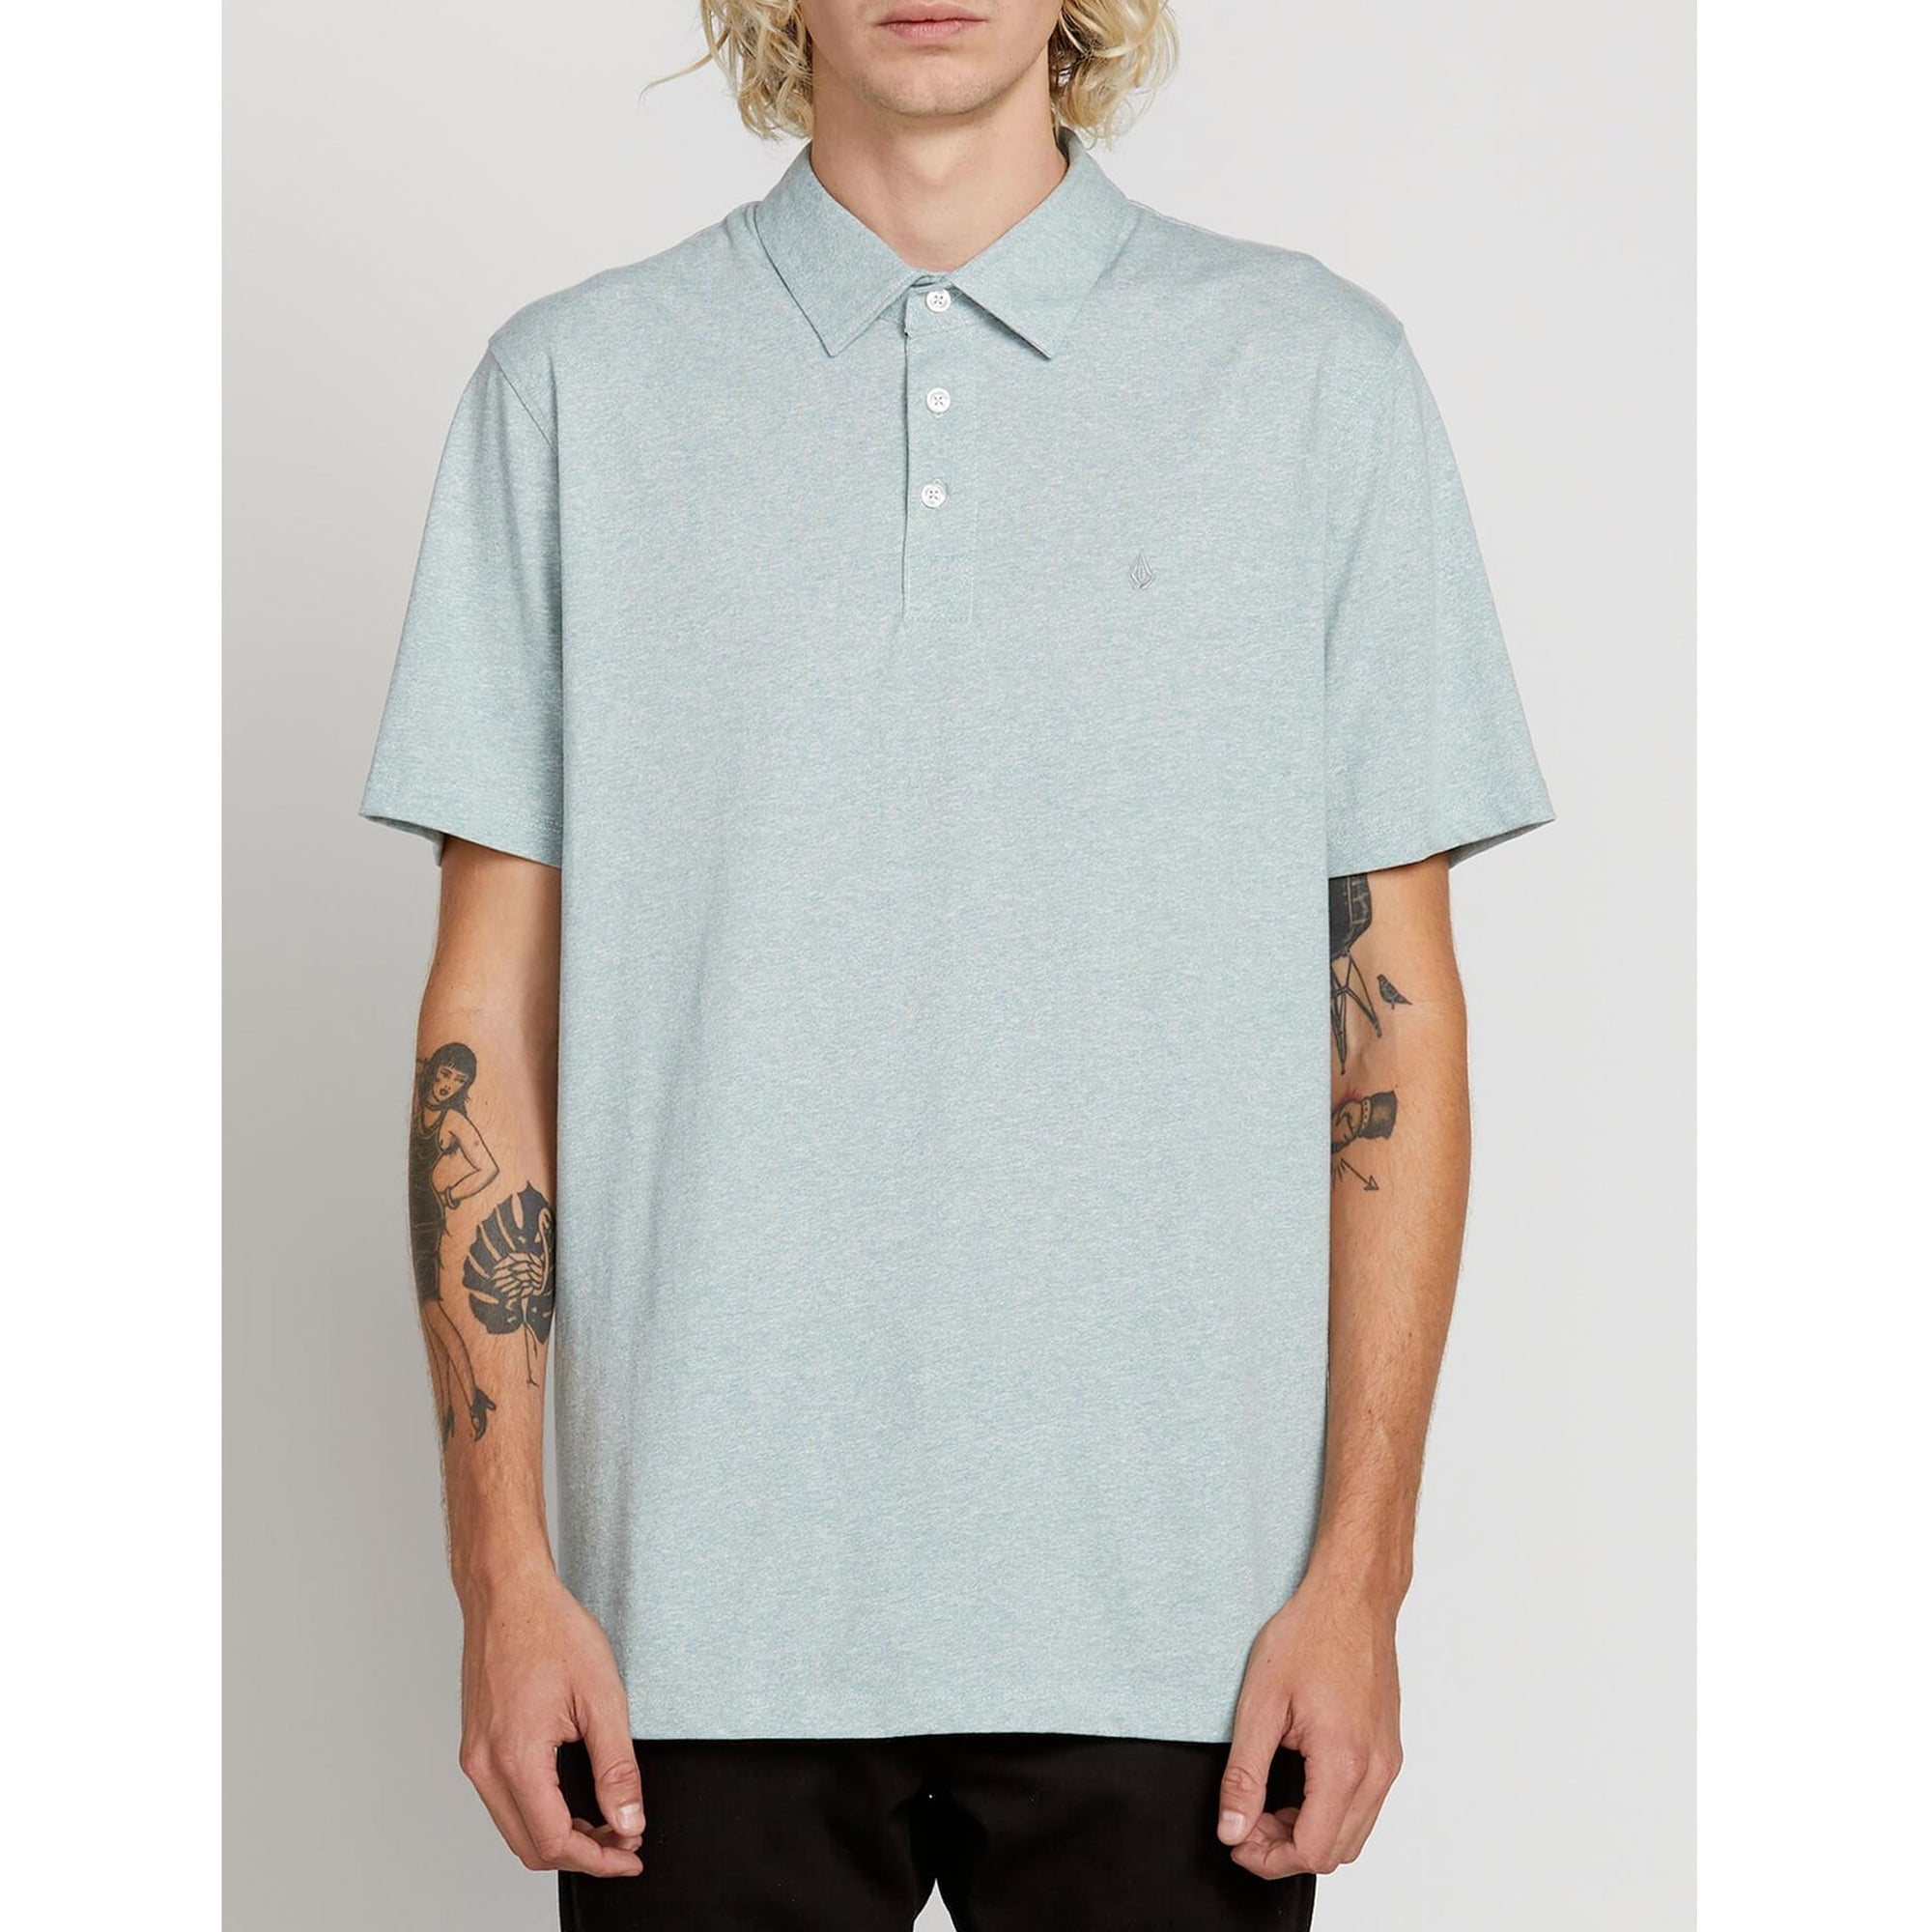 Volcom Wowzer Big Youth Boy's Polo S/S T-Shirt